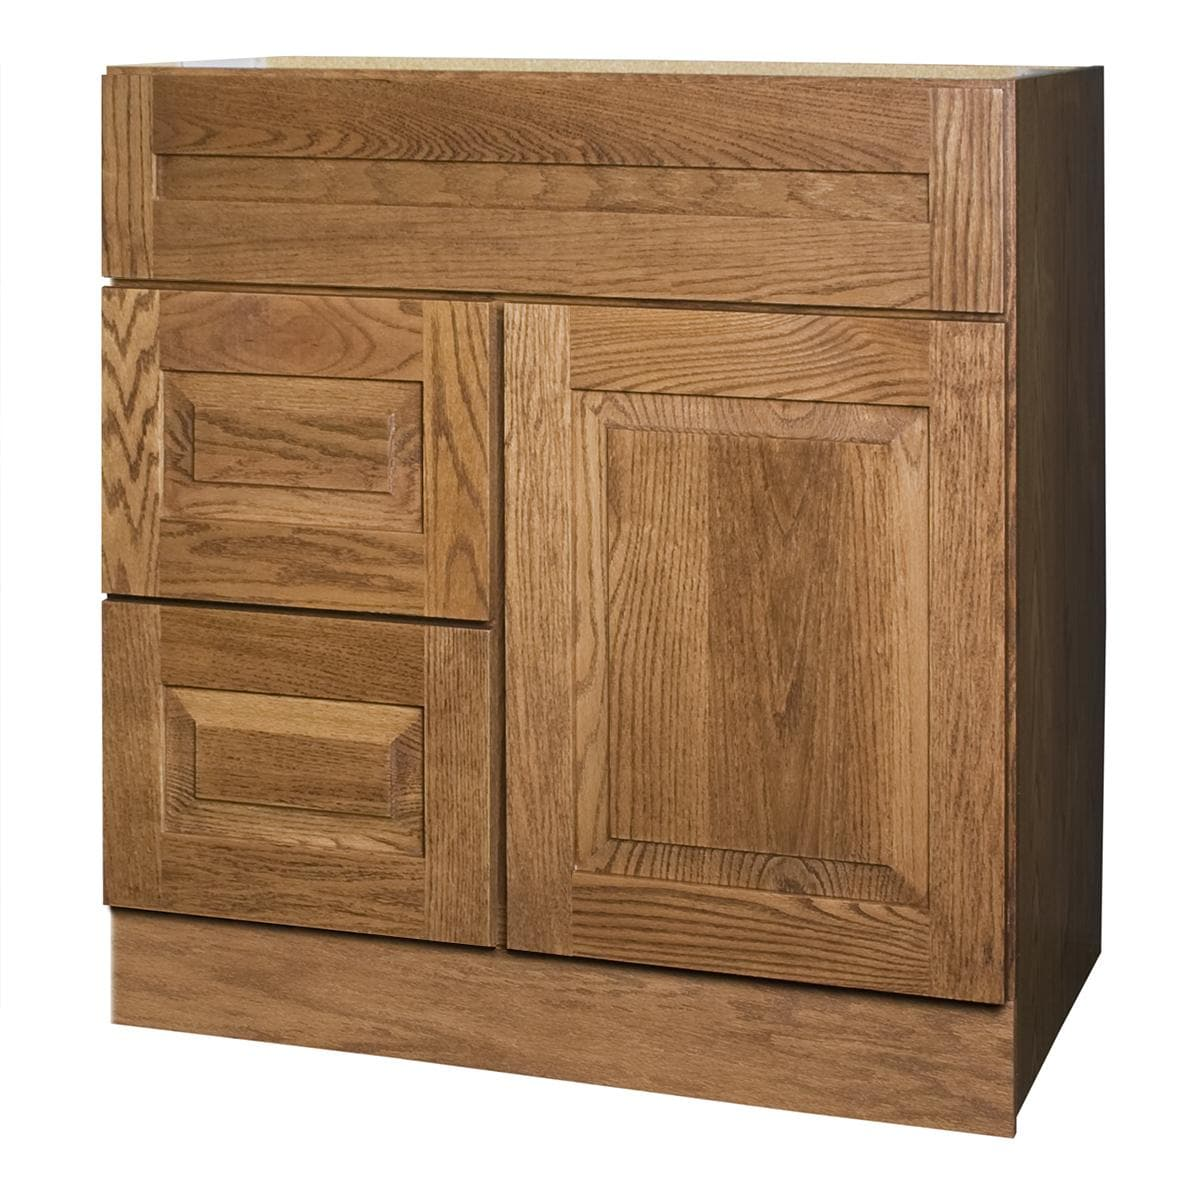 Amalfi series 30x18 inch vanity base with left side - Bathroom vanity with drawers on left ...